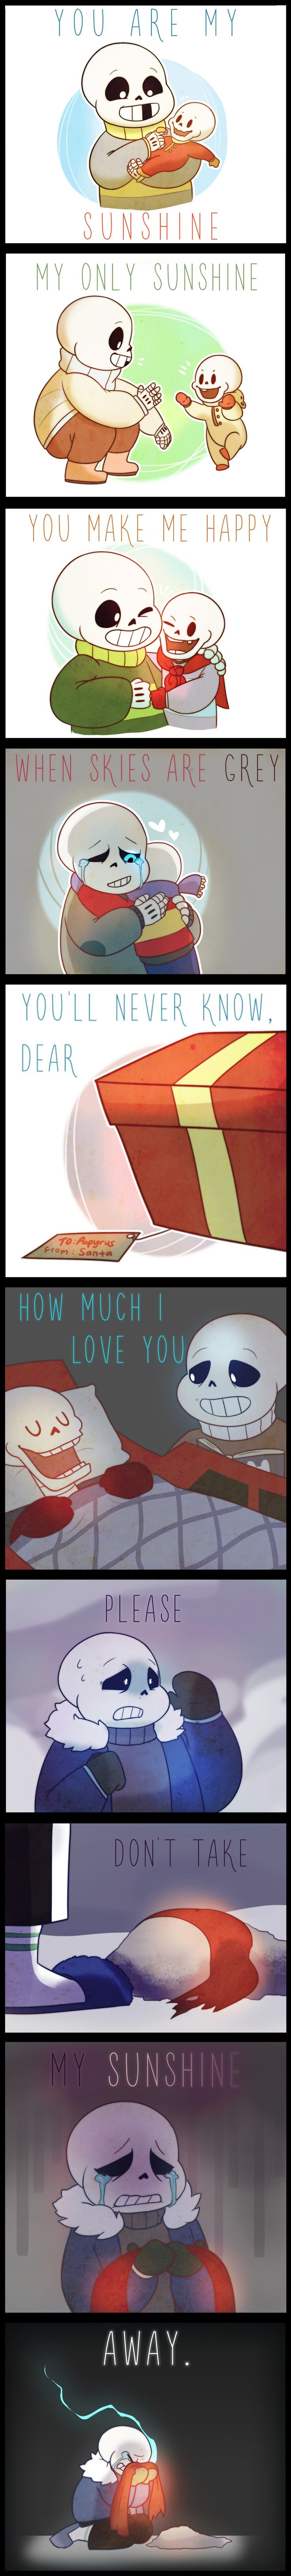 """Sans and Papyrus - """"You Are My Sunshine"""" song"""